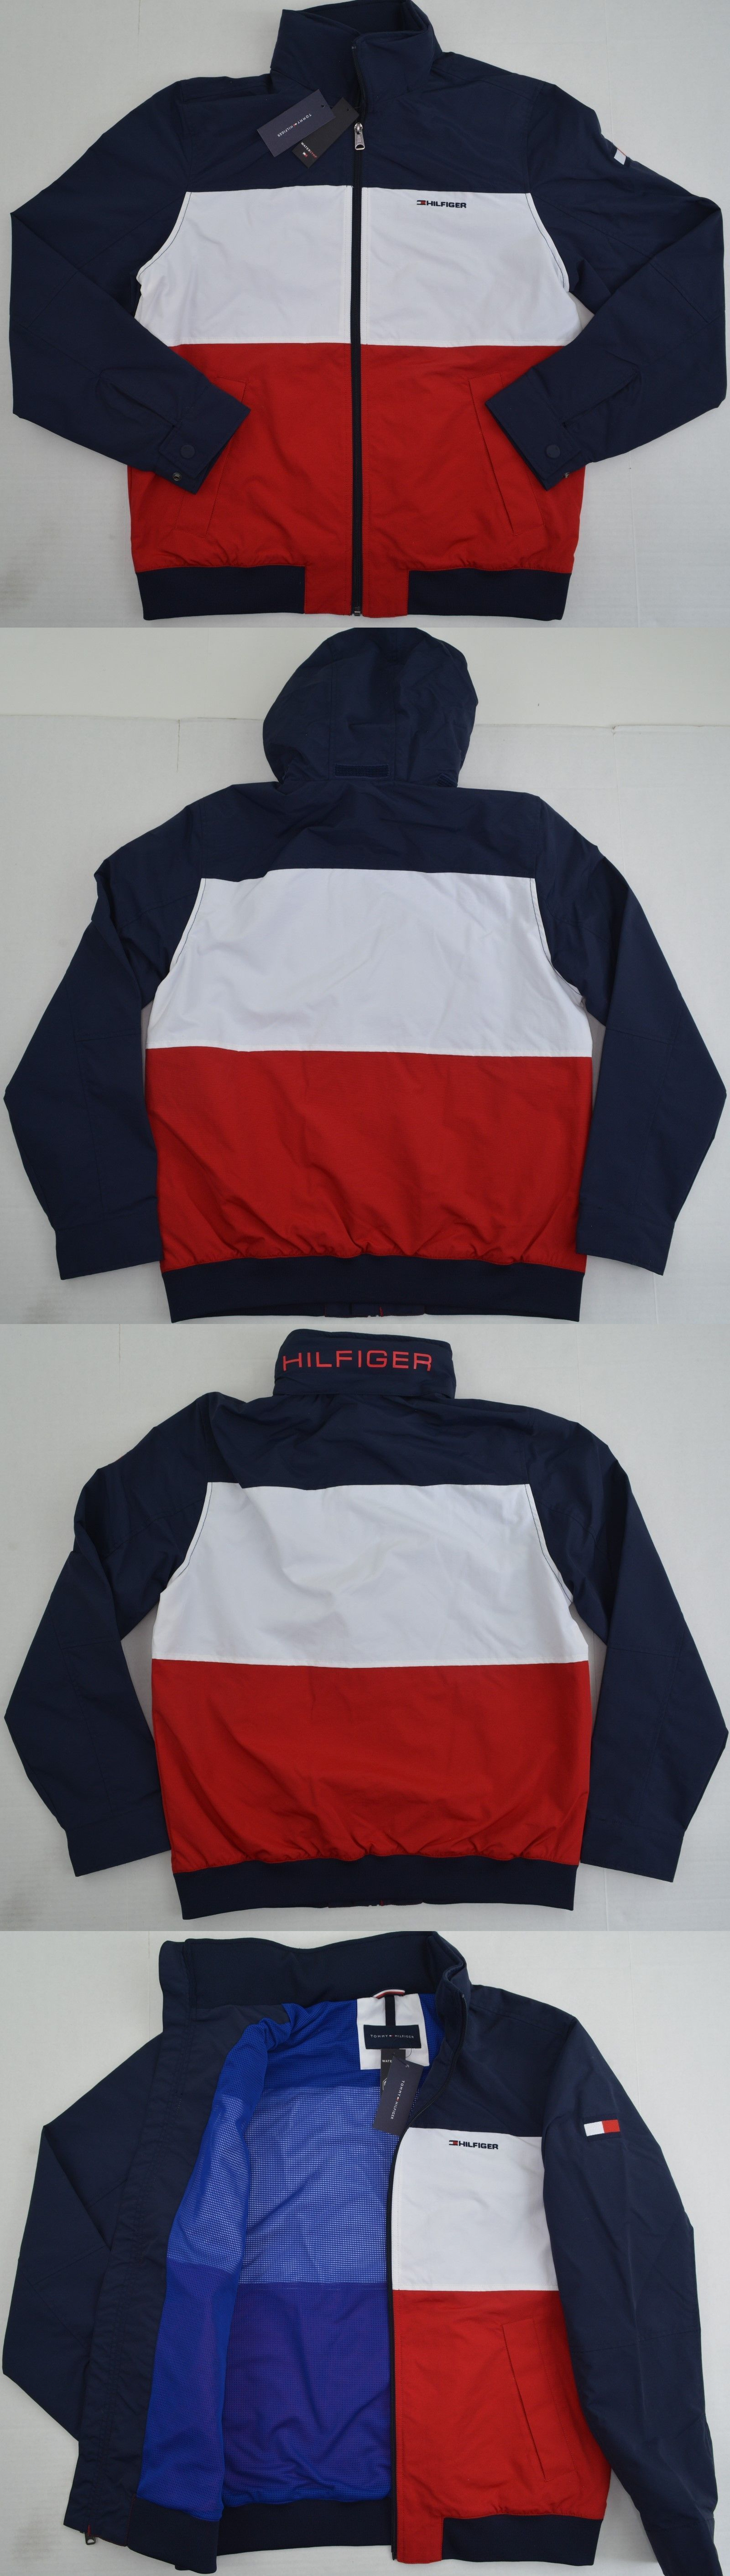 Other Kids Clothing and Accs 175640: Tommy Hilfiger Youth Kids S Flag Yacht  Jacket Outerwear Hoodie Waterstop Nwt -> BUY… | Kids outfits, Outerwear  jackets, Fashion